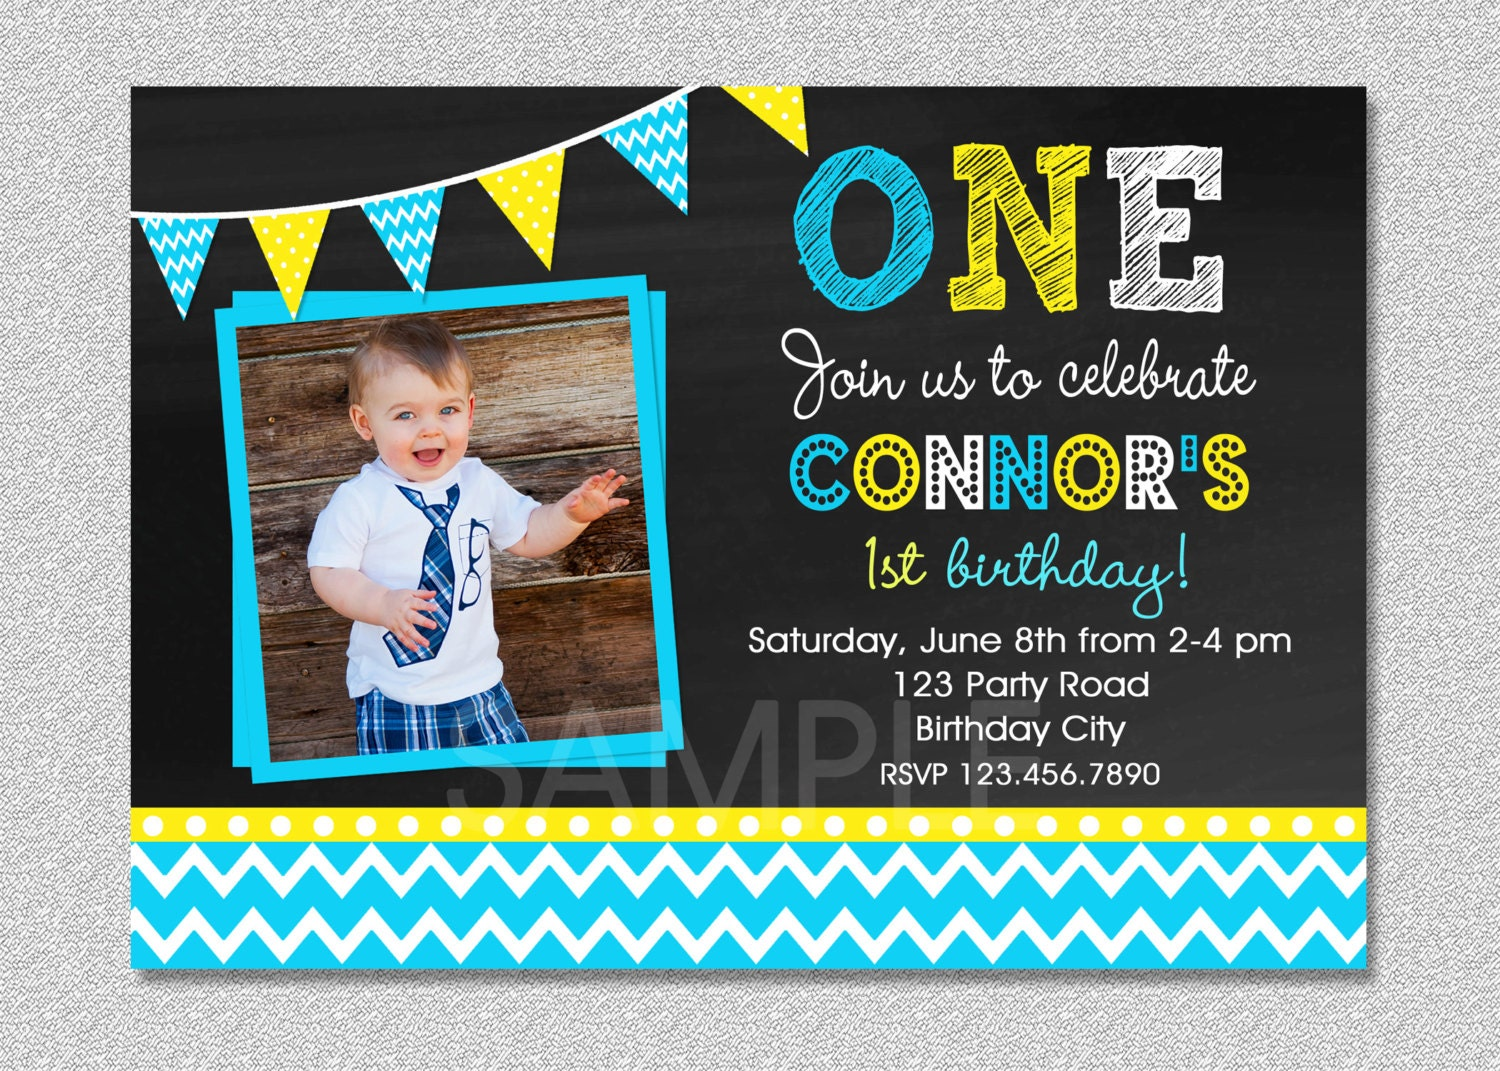 Birthday invitations for boys yeniscale birthday invitations for boys stopboris Choice Image